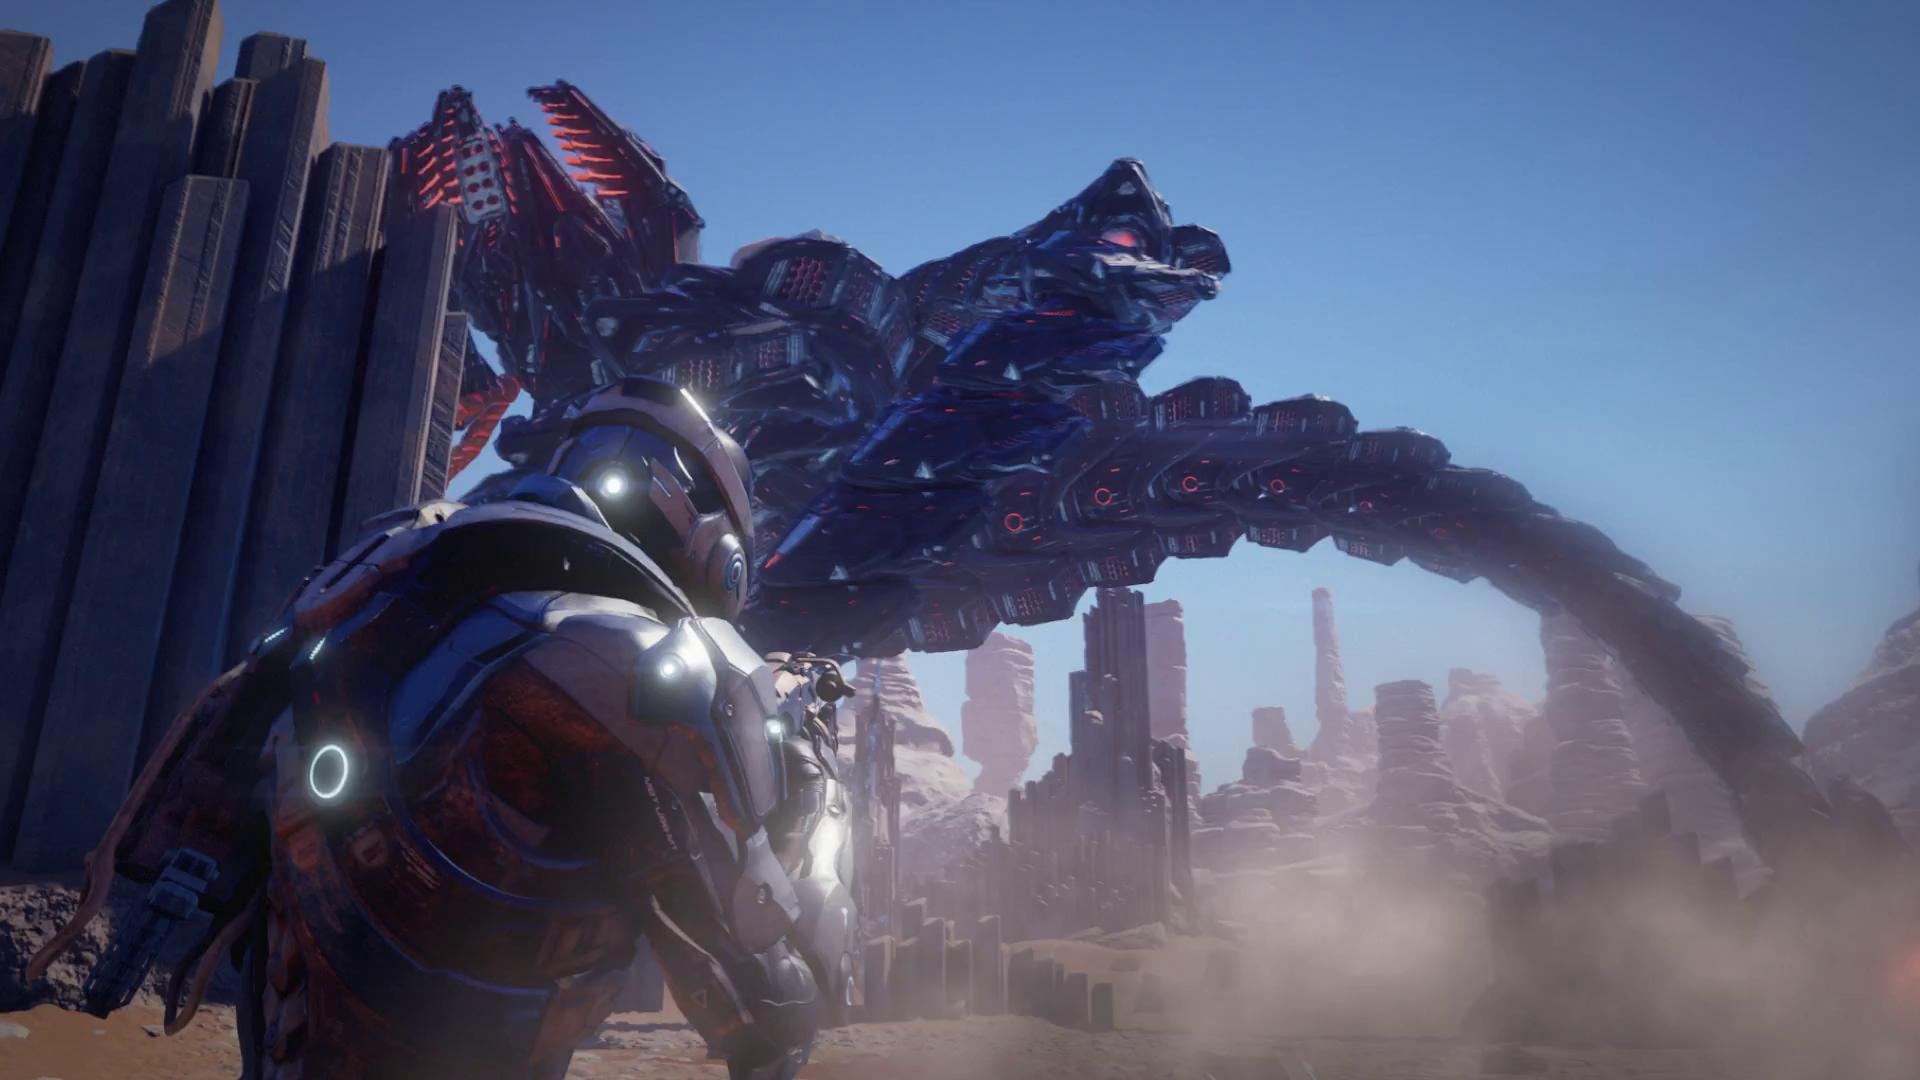 Finally, our first look at Mass Effect: Andromeda gameplay